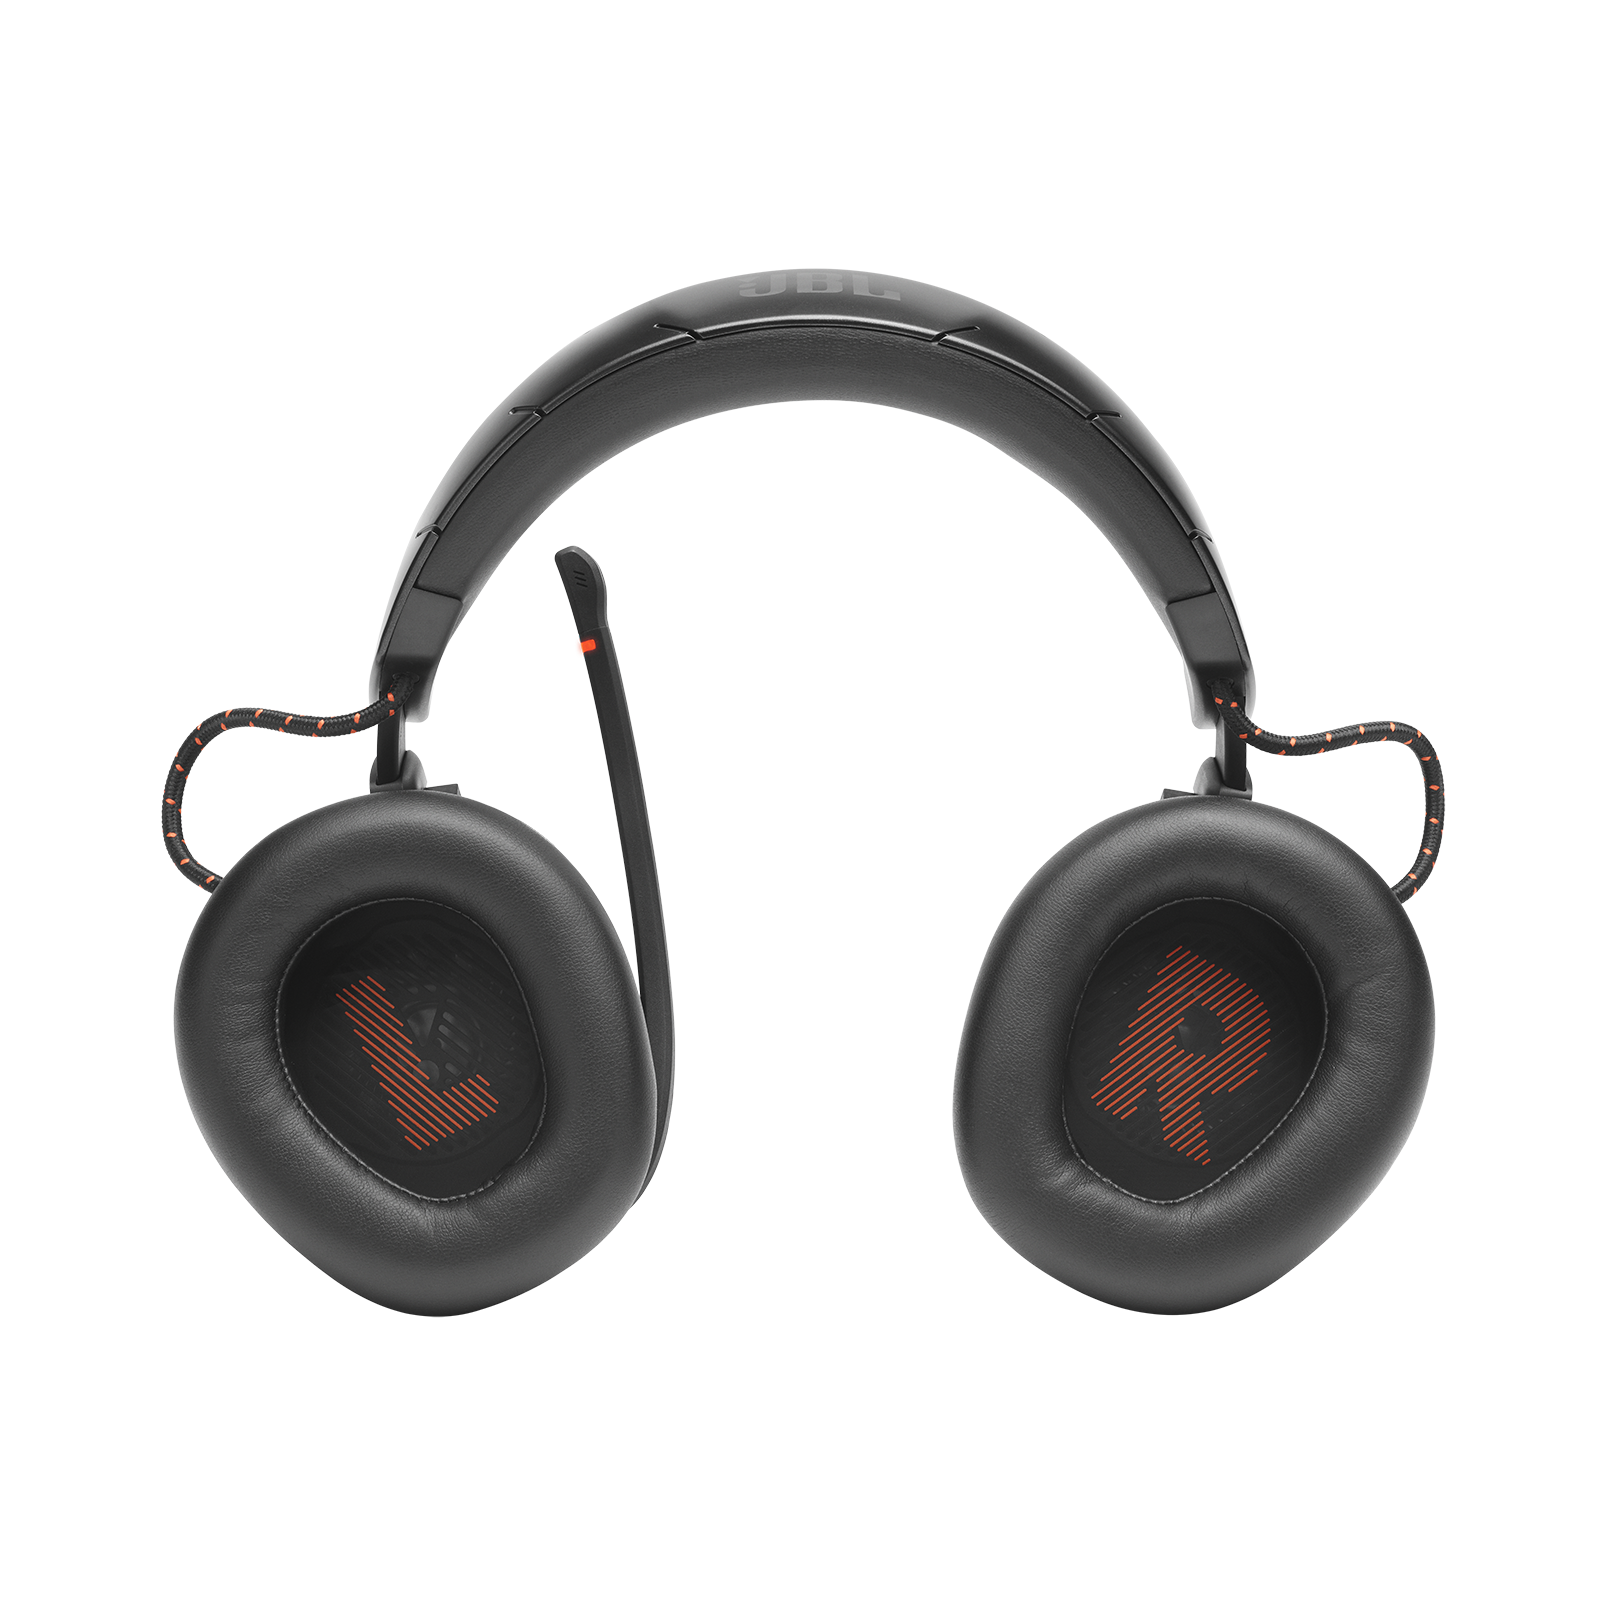 JBL Quantum 600 - Black - Wireless over-ear performance gaming headset with surround sound and game-chat balance dial - Detailshot 6